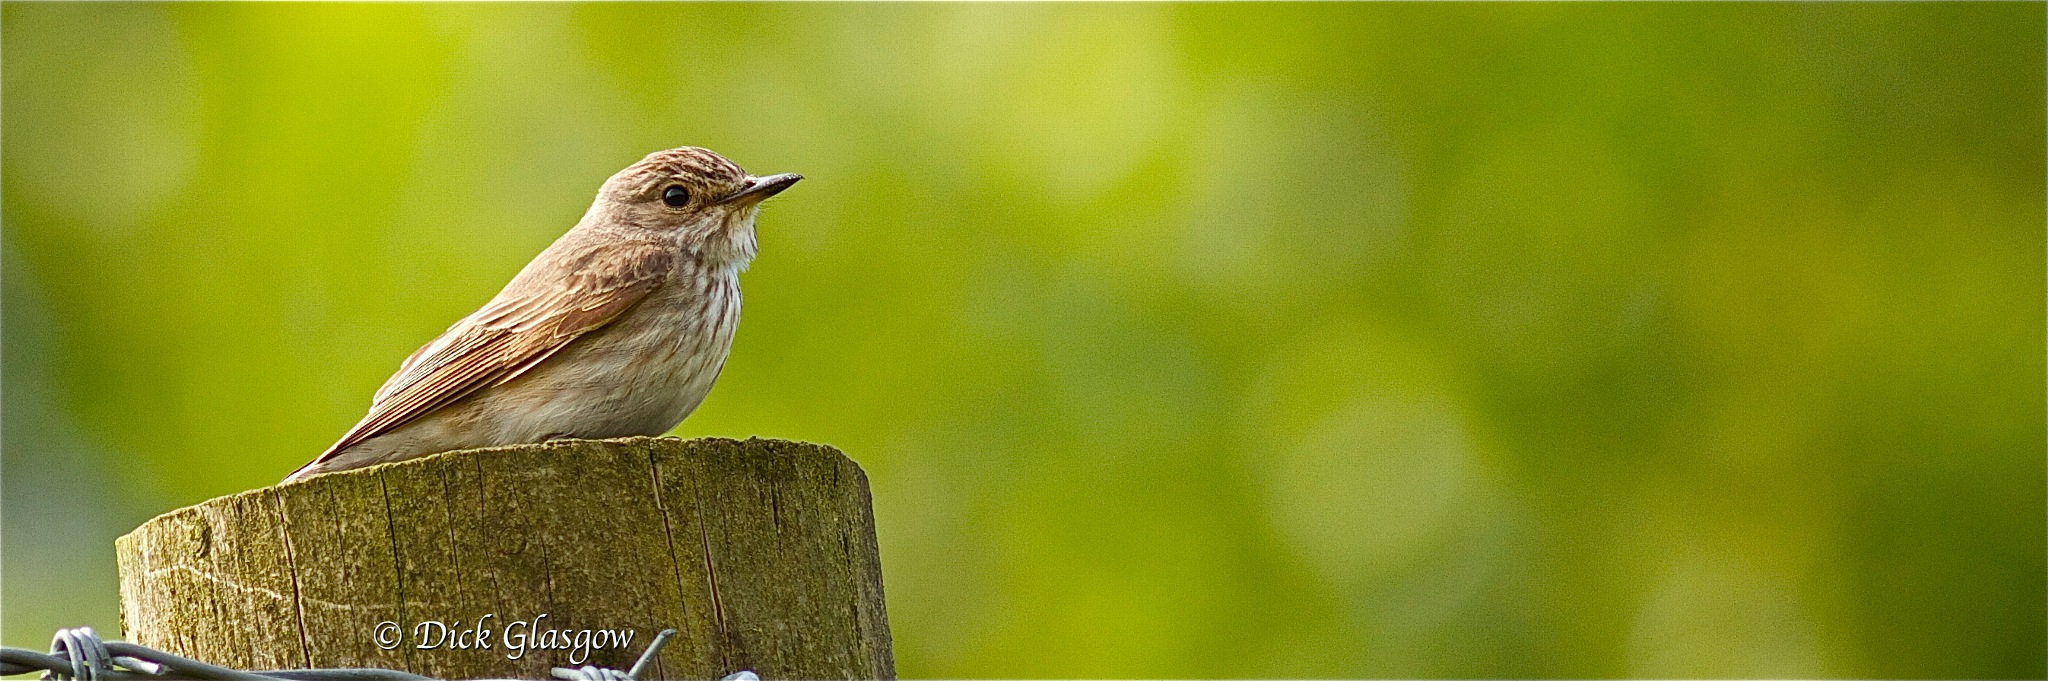 Spotted Flycatcher by Dick Glasgow